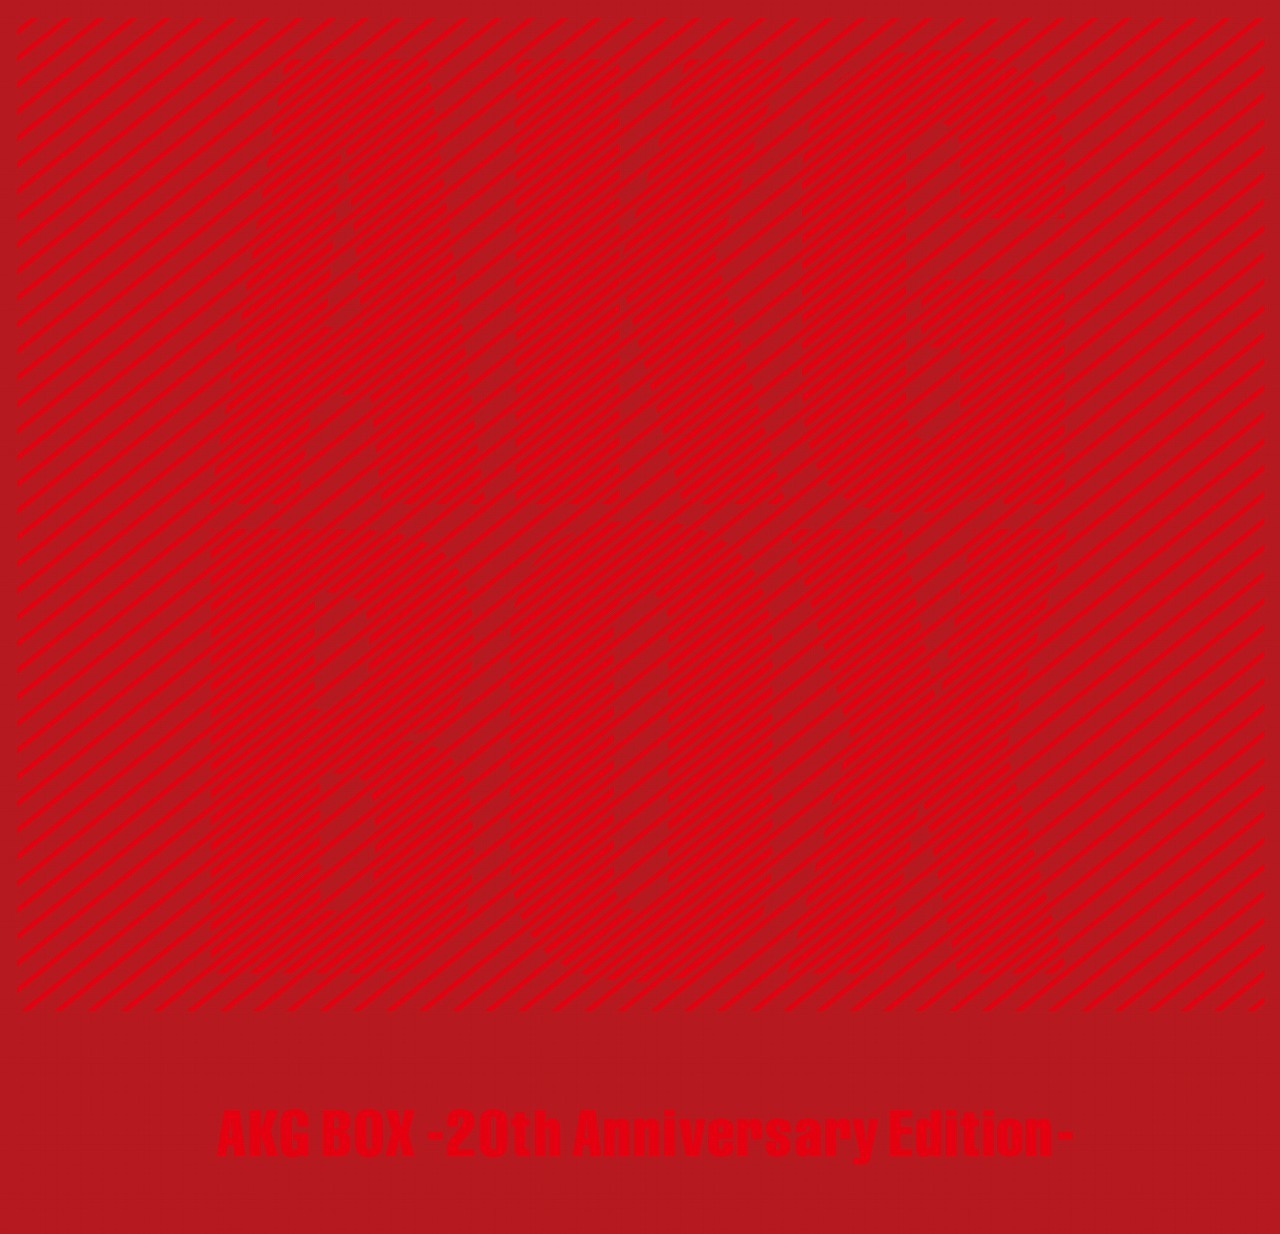 『AKG BOX -20th Anniversary Edition-』